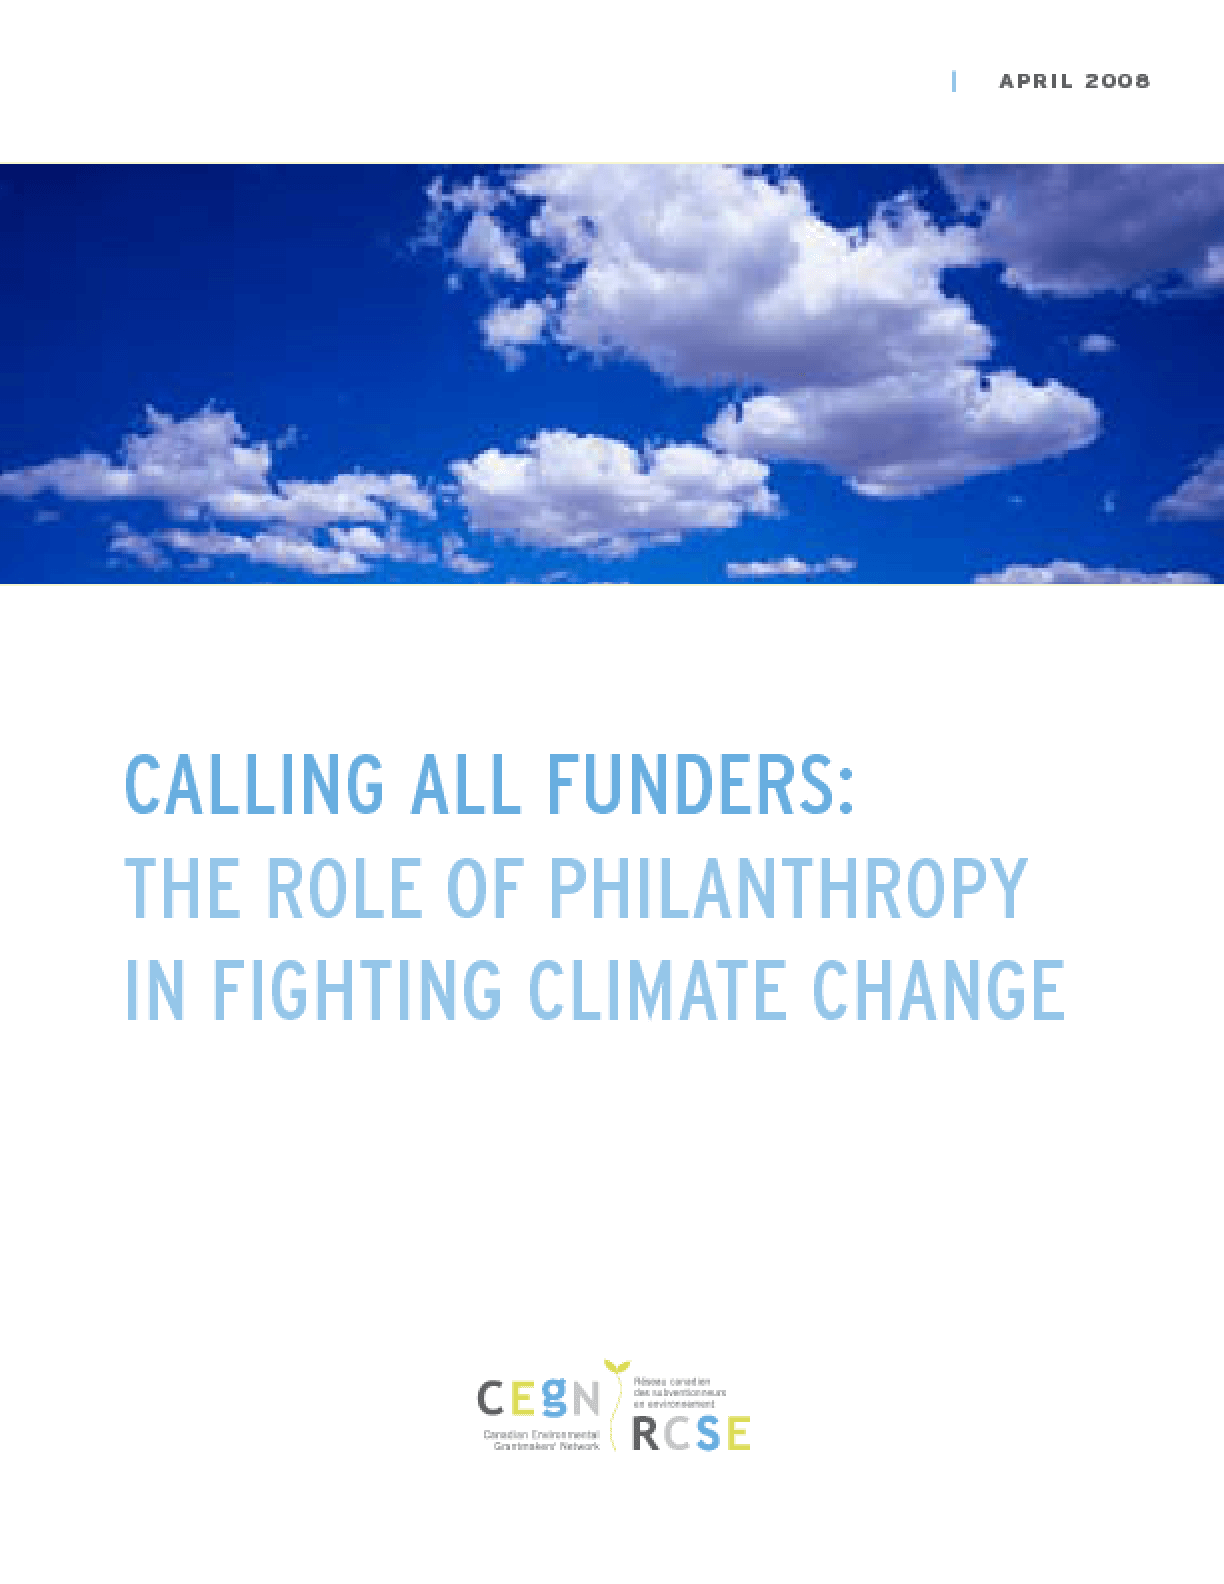 Calling All Funders: The Role of Philanthropy in Fighting Climate Change